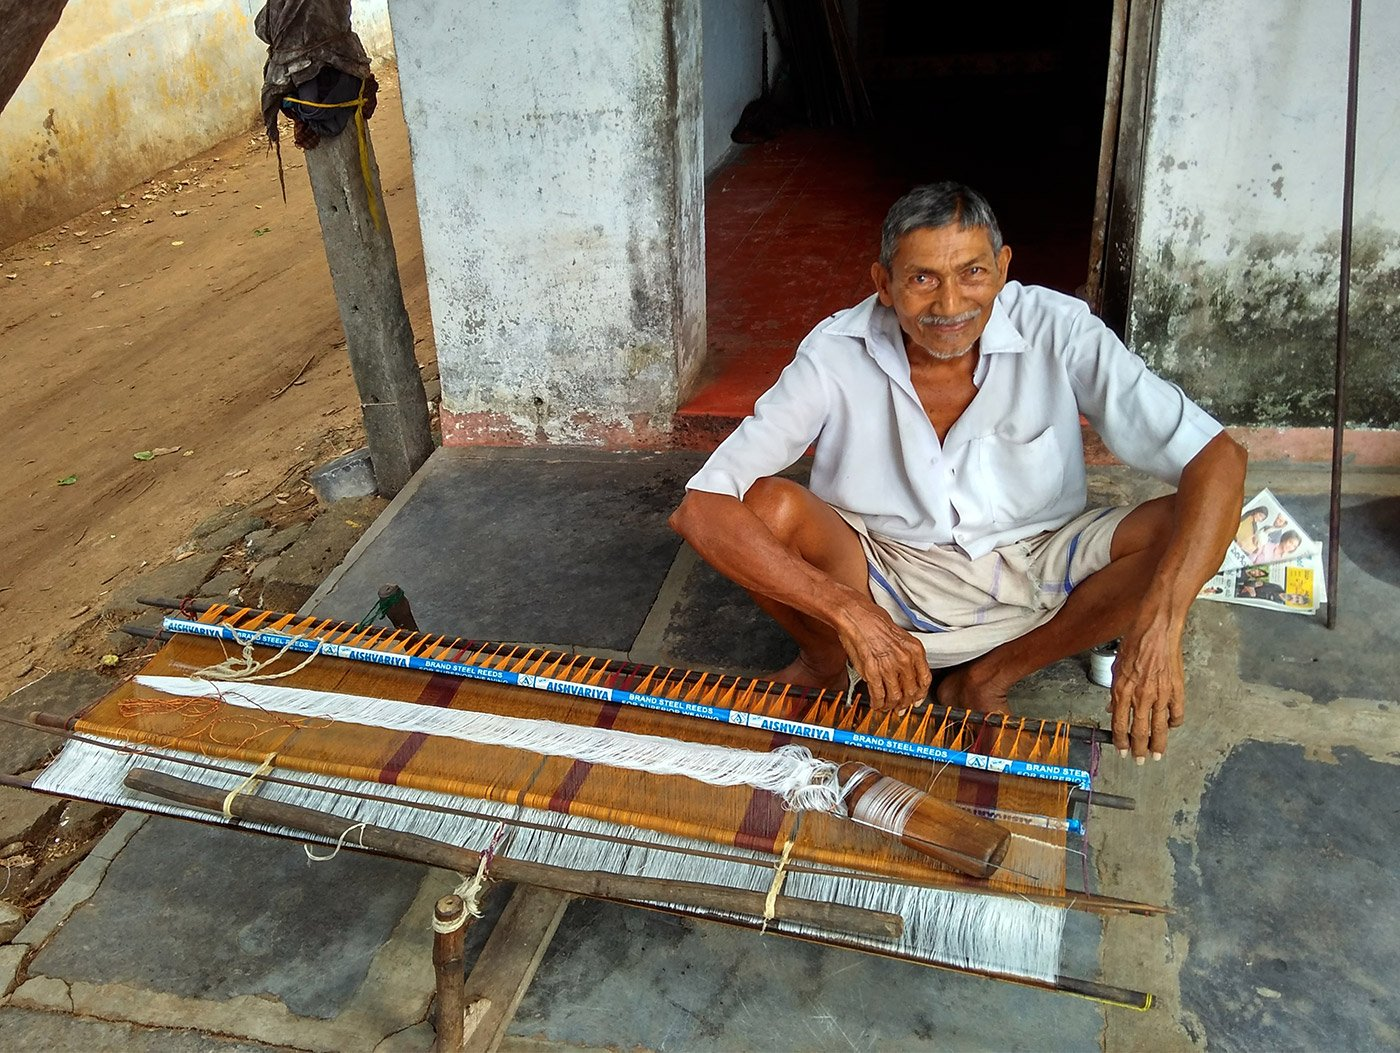 Most of the handloom weavers in Pedana in Andhra Pradesh are elderly, as are many of the town's Kalamkari printers – a lack of state support and poor incomes have impacted both industries and forced the younger generation to migrate for work